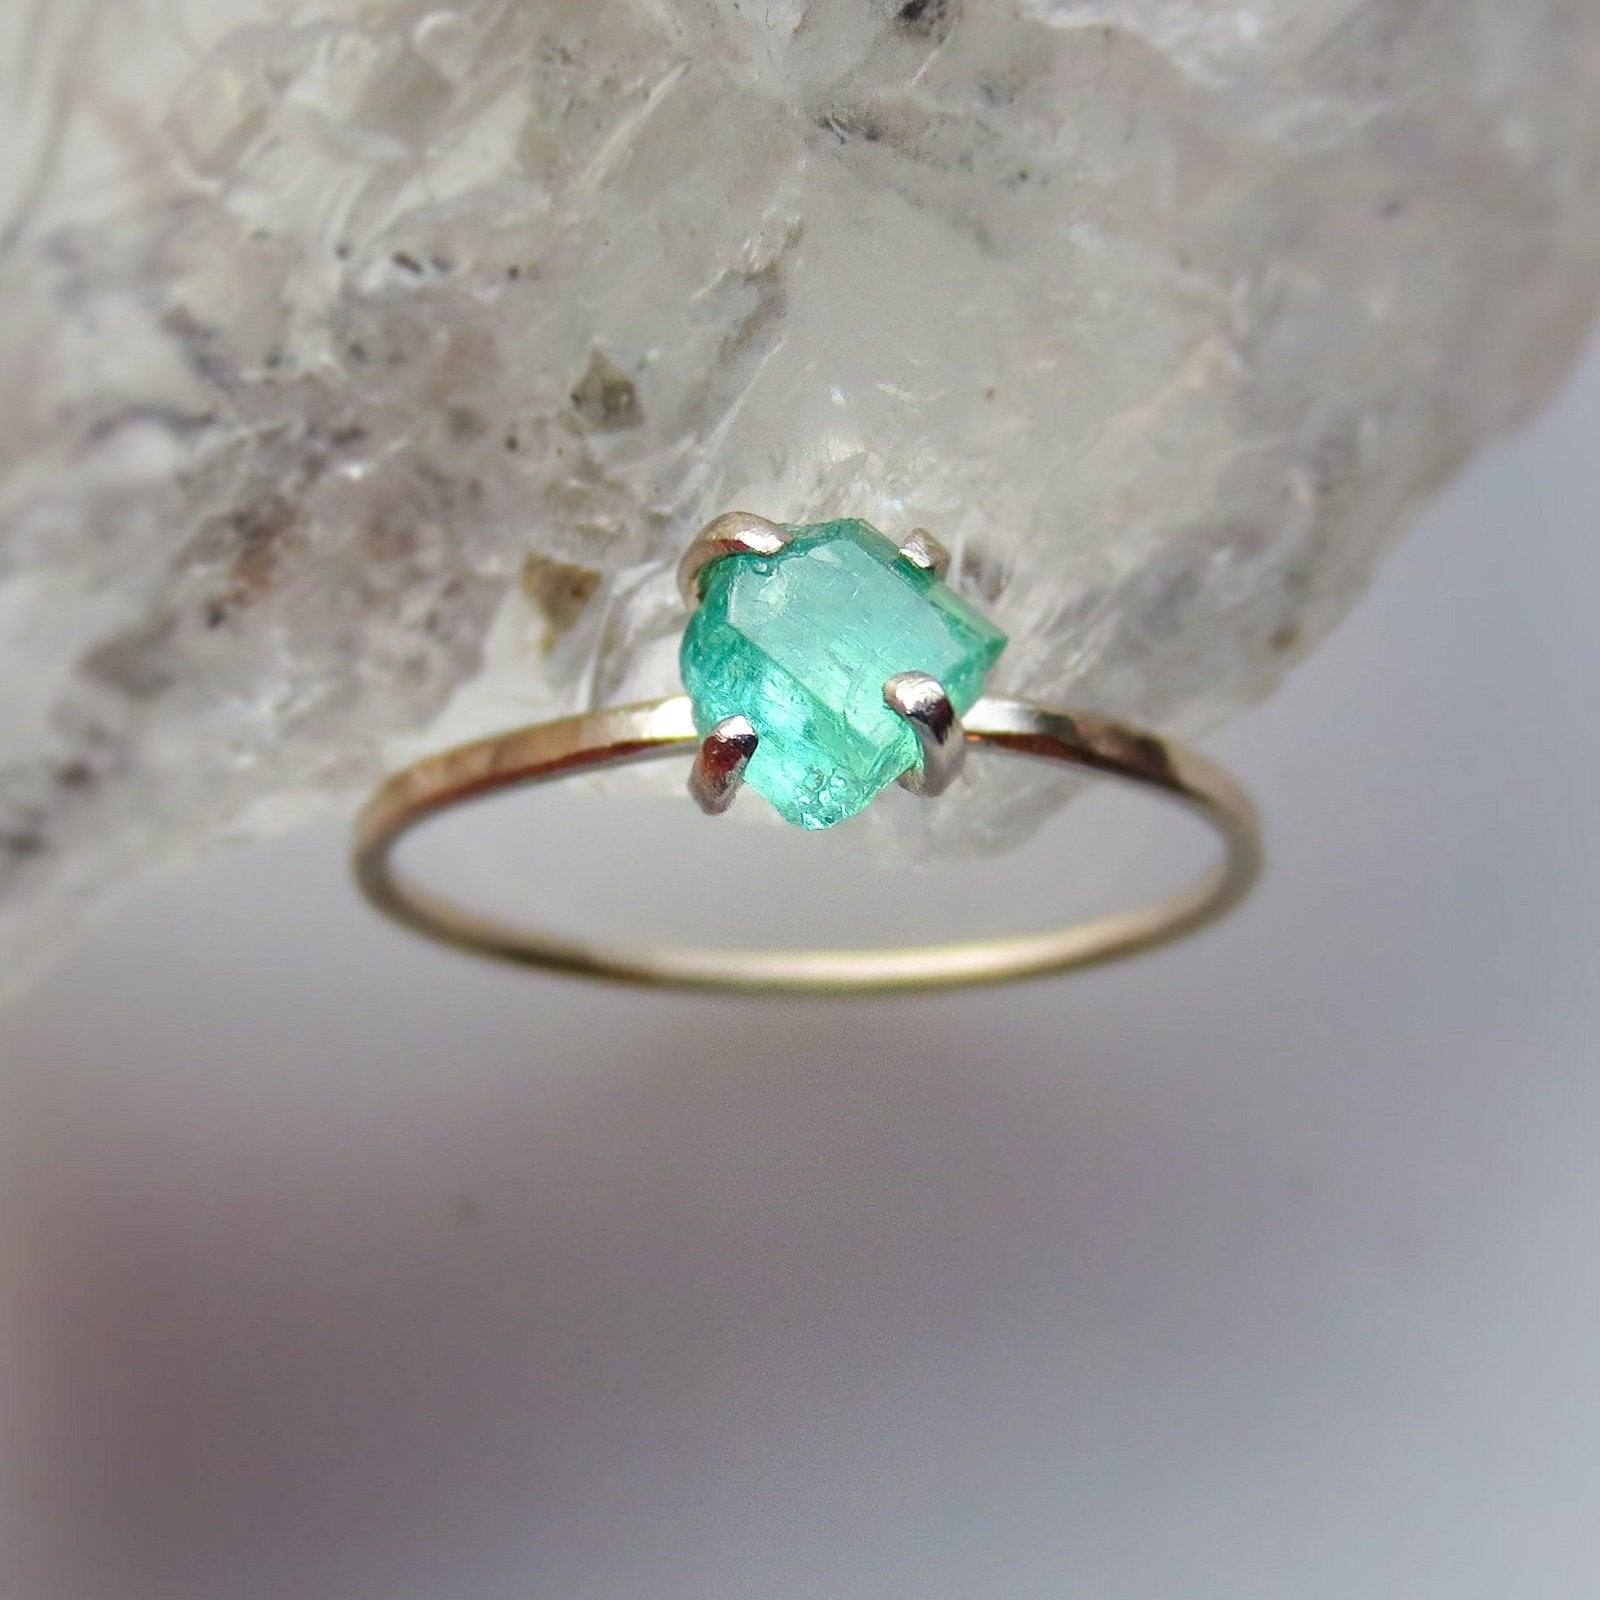 Raw Emerald White Gold Ring | US Ring Size 6.5 | Ready To Ship - sample sale